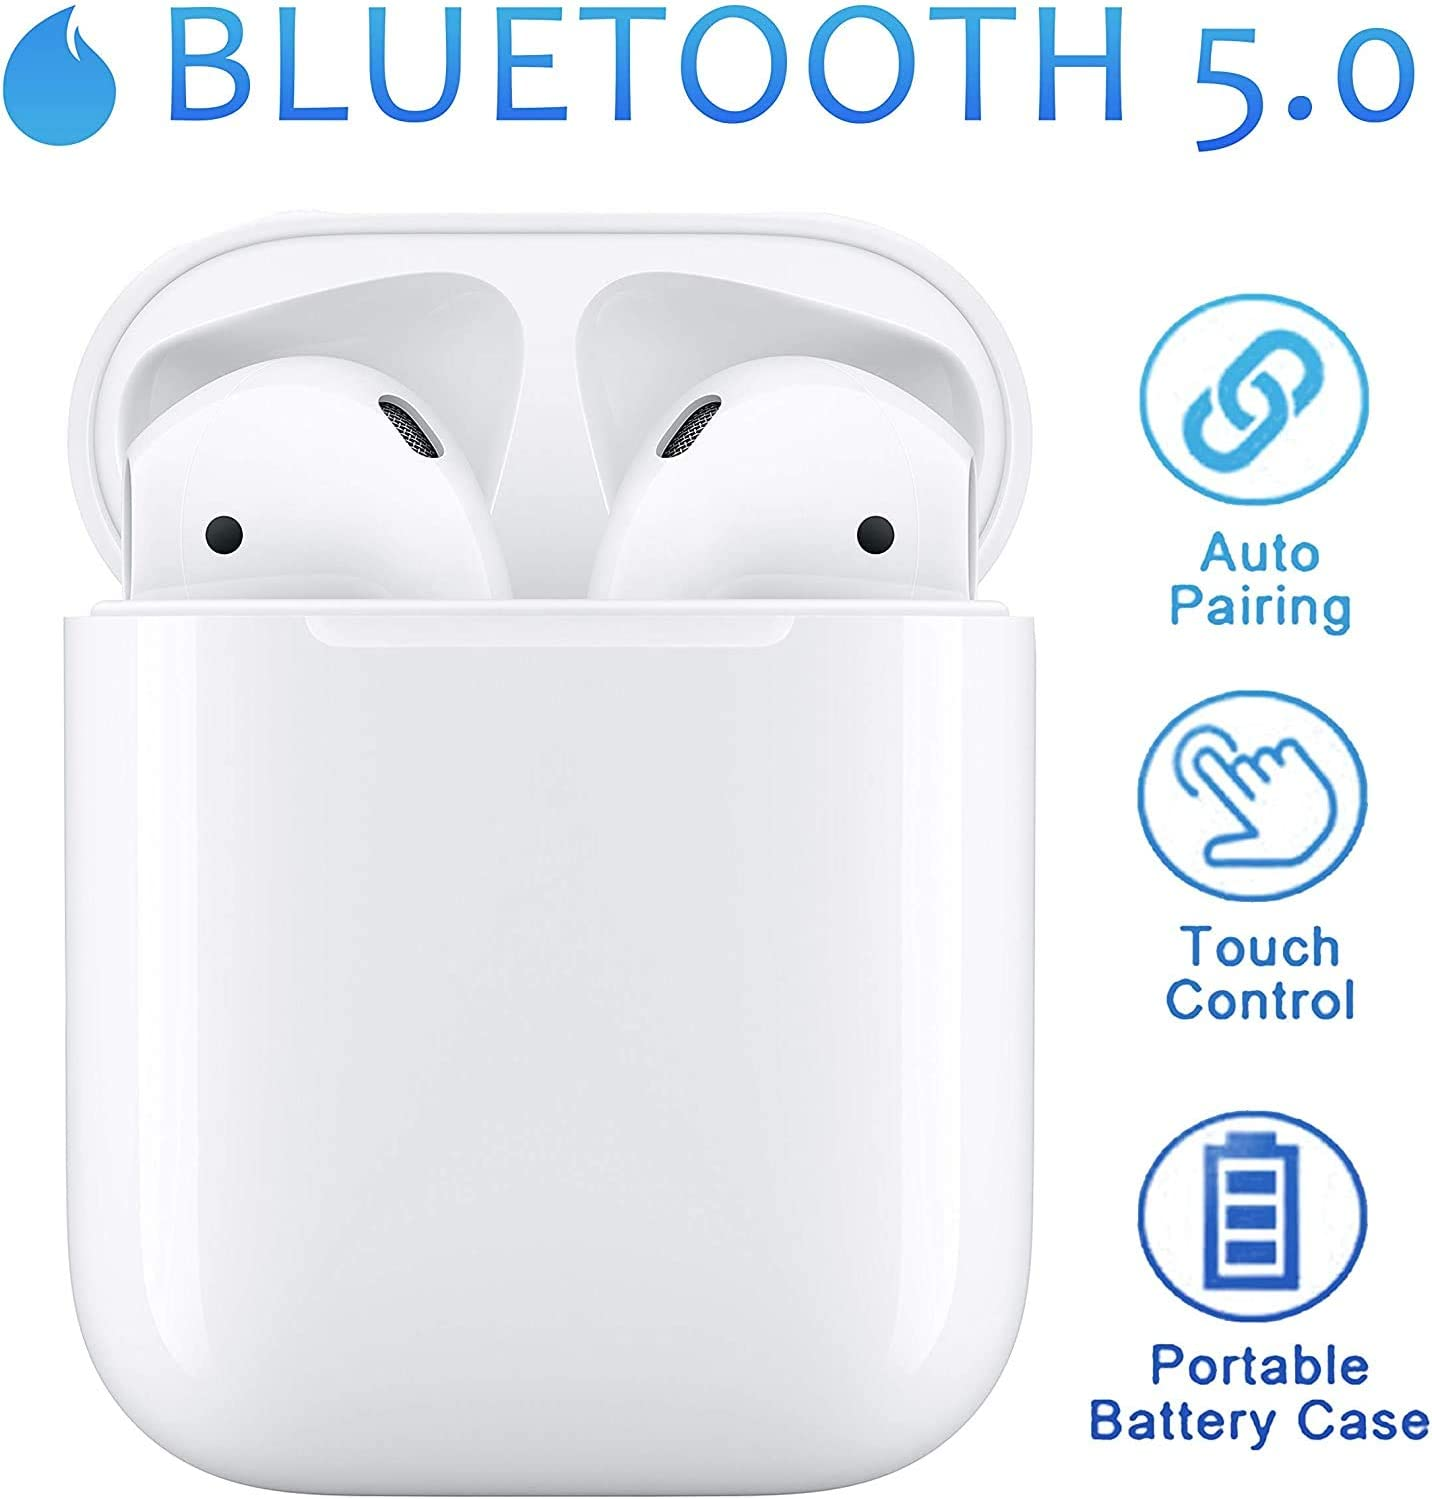 Auriculares Bluetooth 5.0 Auriculares Inalámbricos Control Táctil con Graves Profundos In-Ear Auriculares Bluetooth con Caja de Carga Rápida IPX5 Impermeables,para Android/iPhone Auriculares